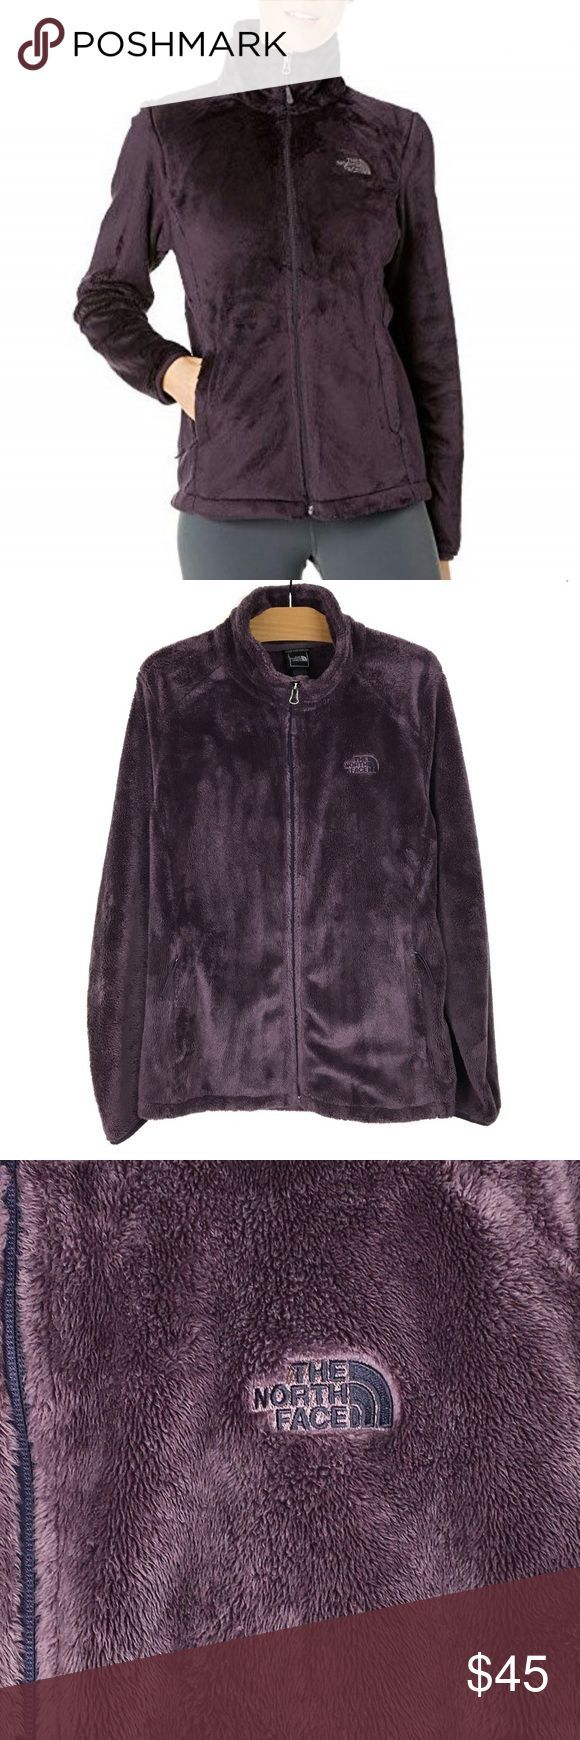 The North Face Osito 2 Jacket Galaxy Purple Xl The North Face Osito 2 Jacket Co North Face Osito The North Face Jackets [ 1740 x 580 Pixel ]